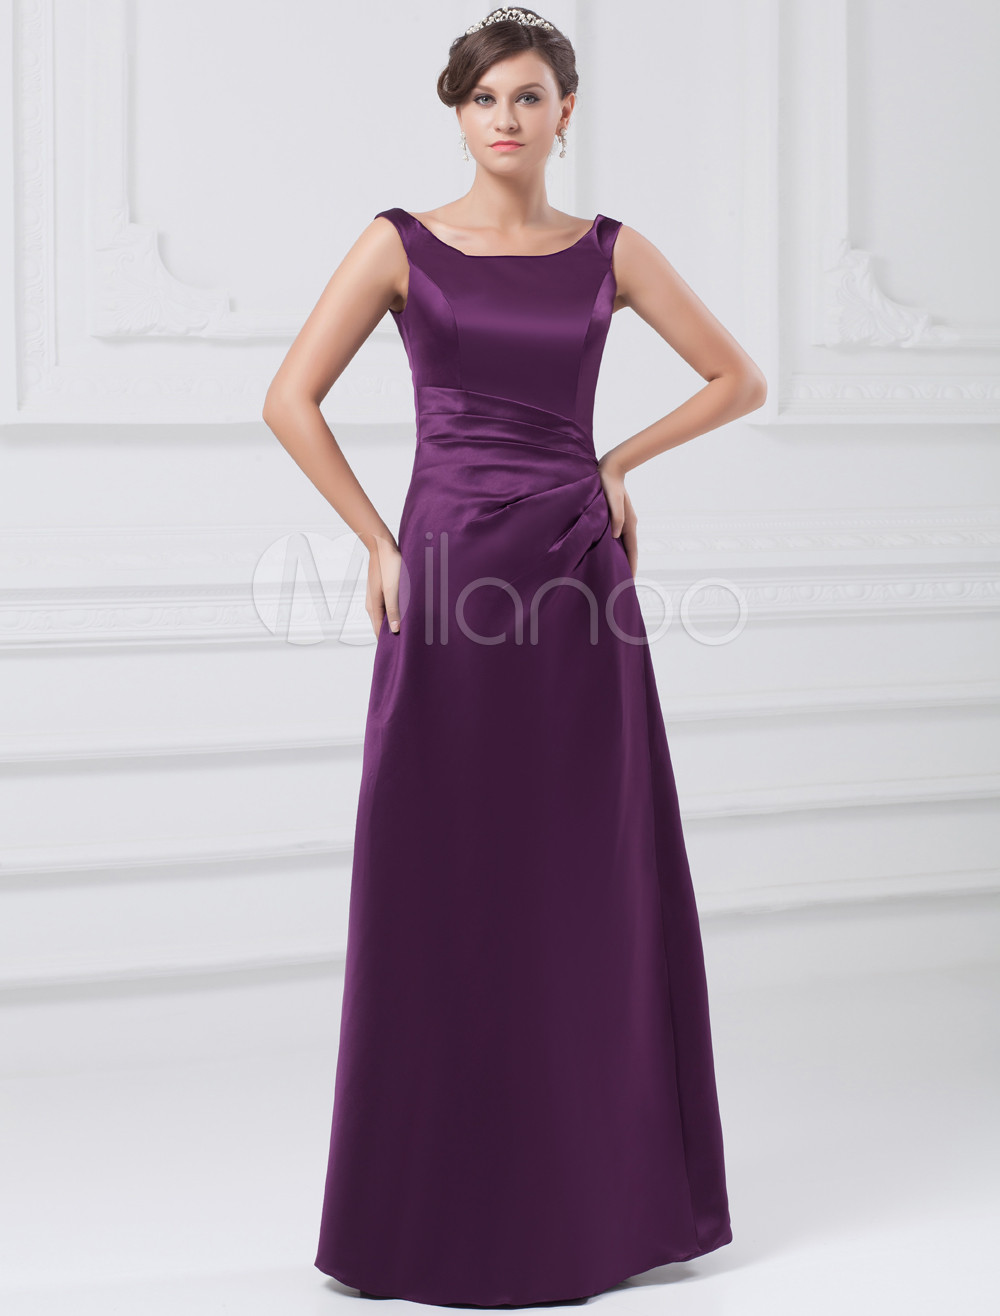 Sheath Grape Satin Scoop Neck Floor-Length Bridesmaid Dress For Wedding